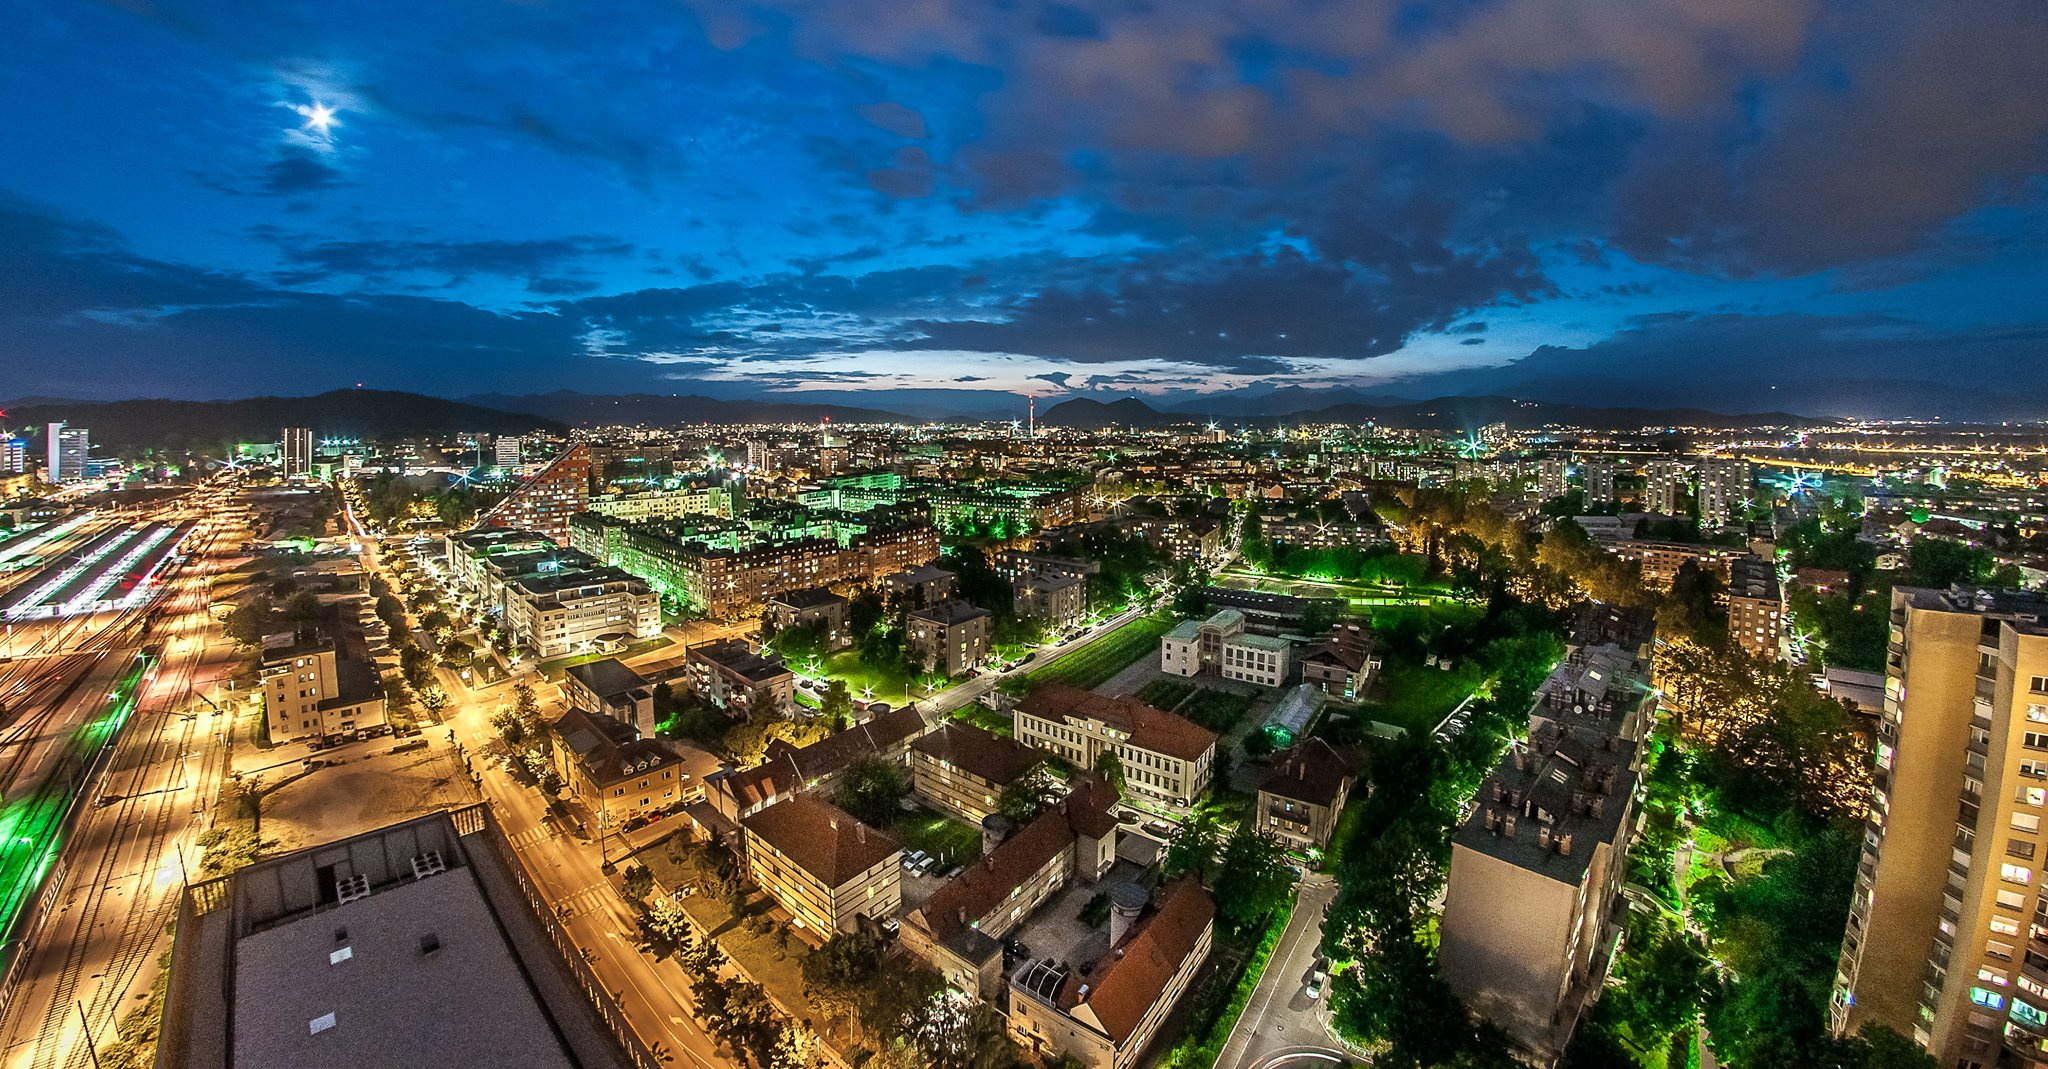 Ljubljana was selected as Green Capital of Europe 2016. Photo by Matic Kremžar